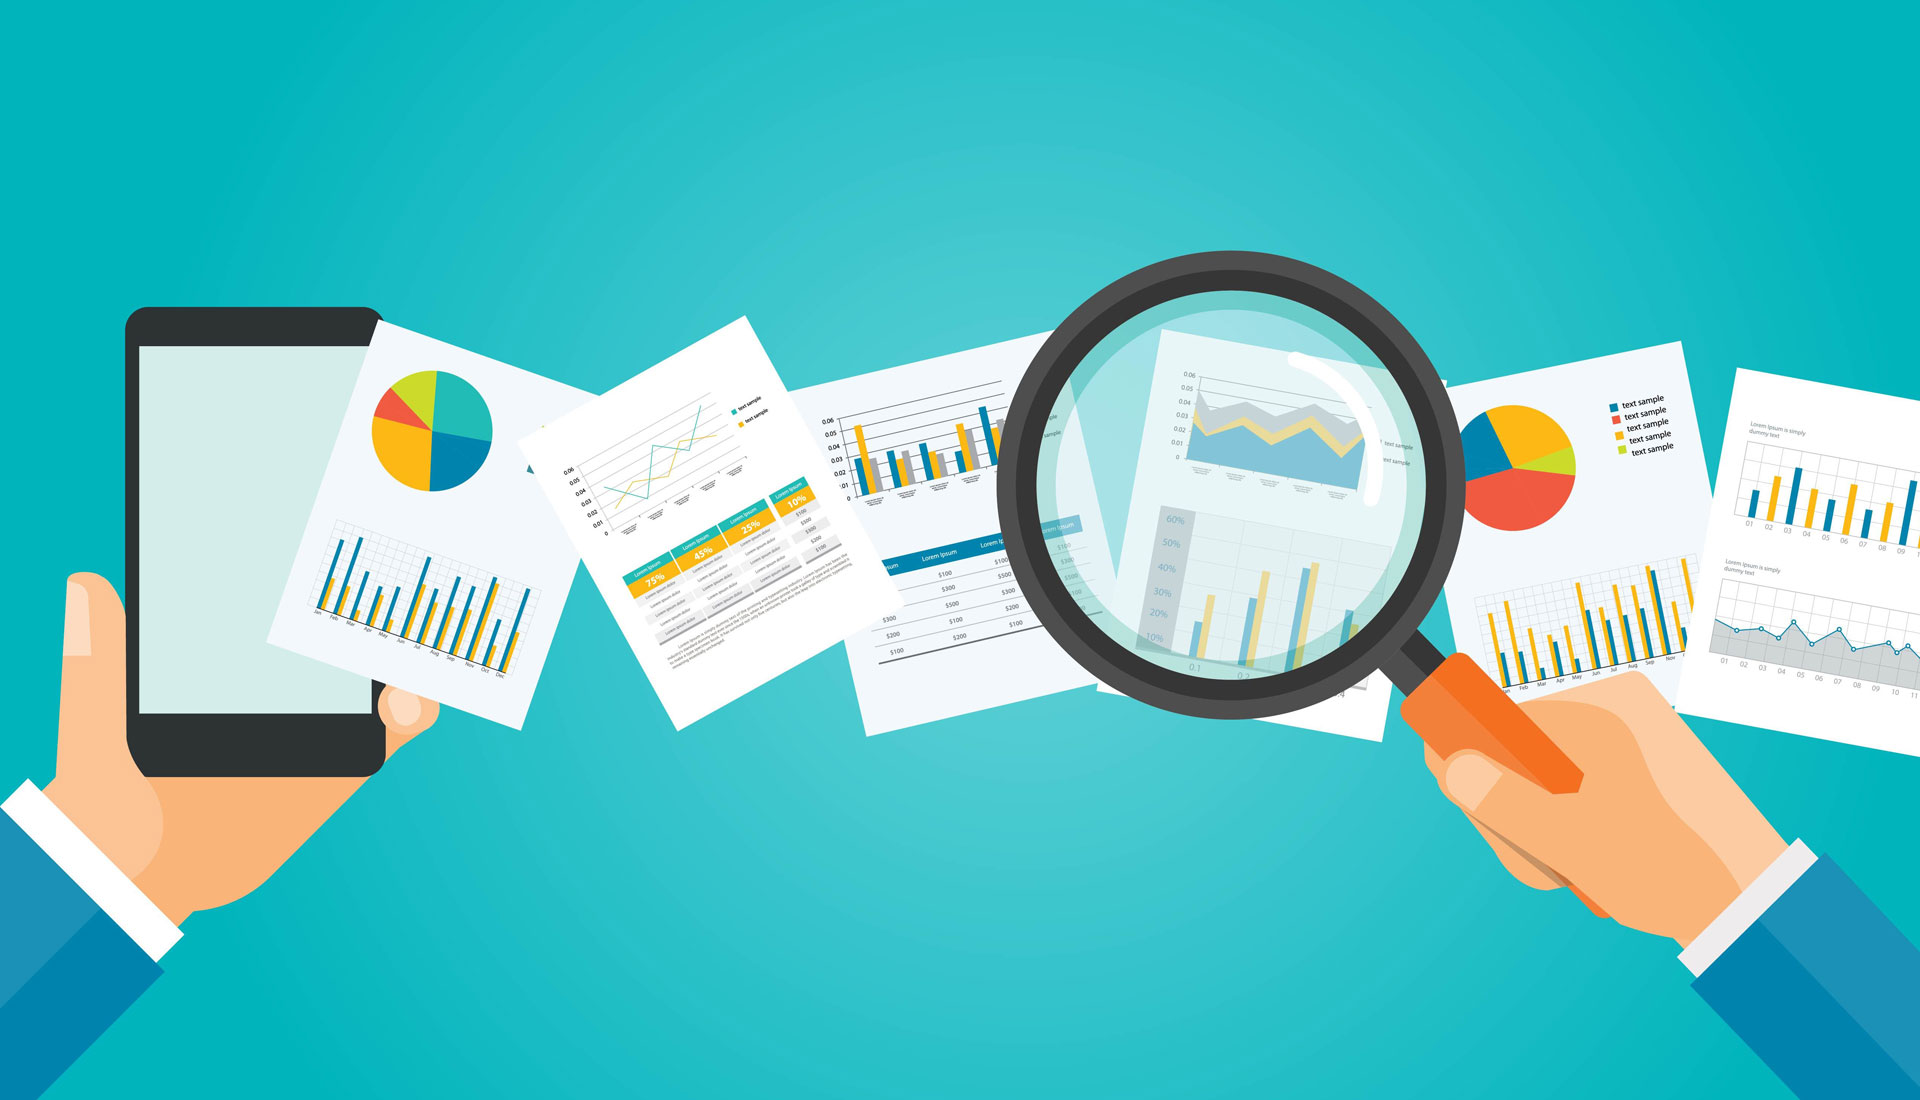 7 Questions To Ask When Selecting An Investment Advisor